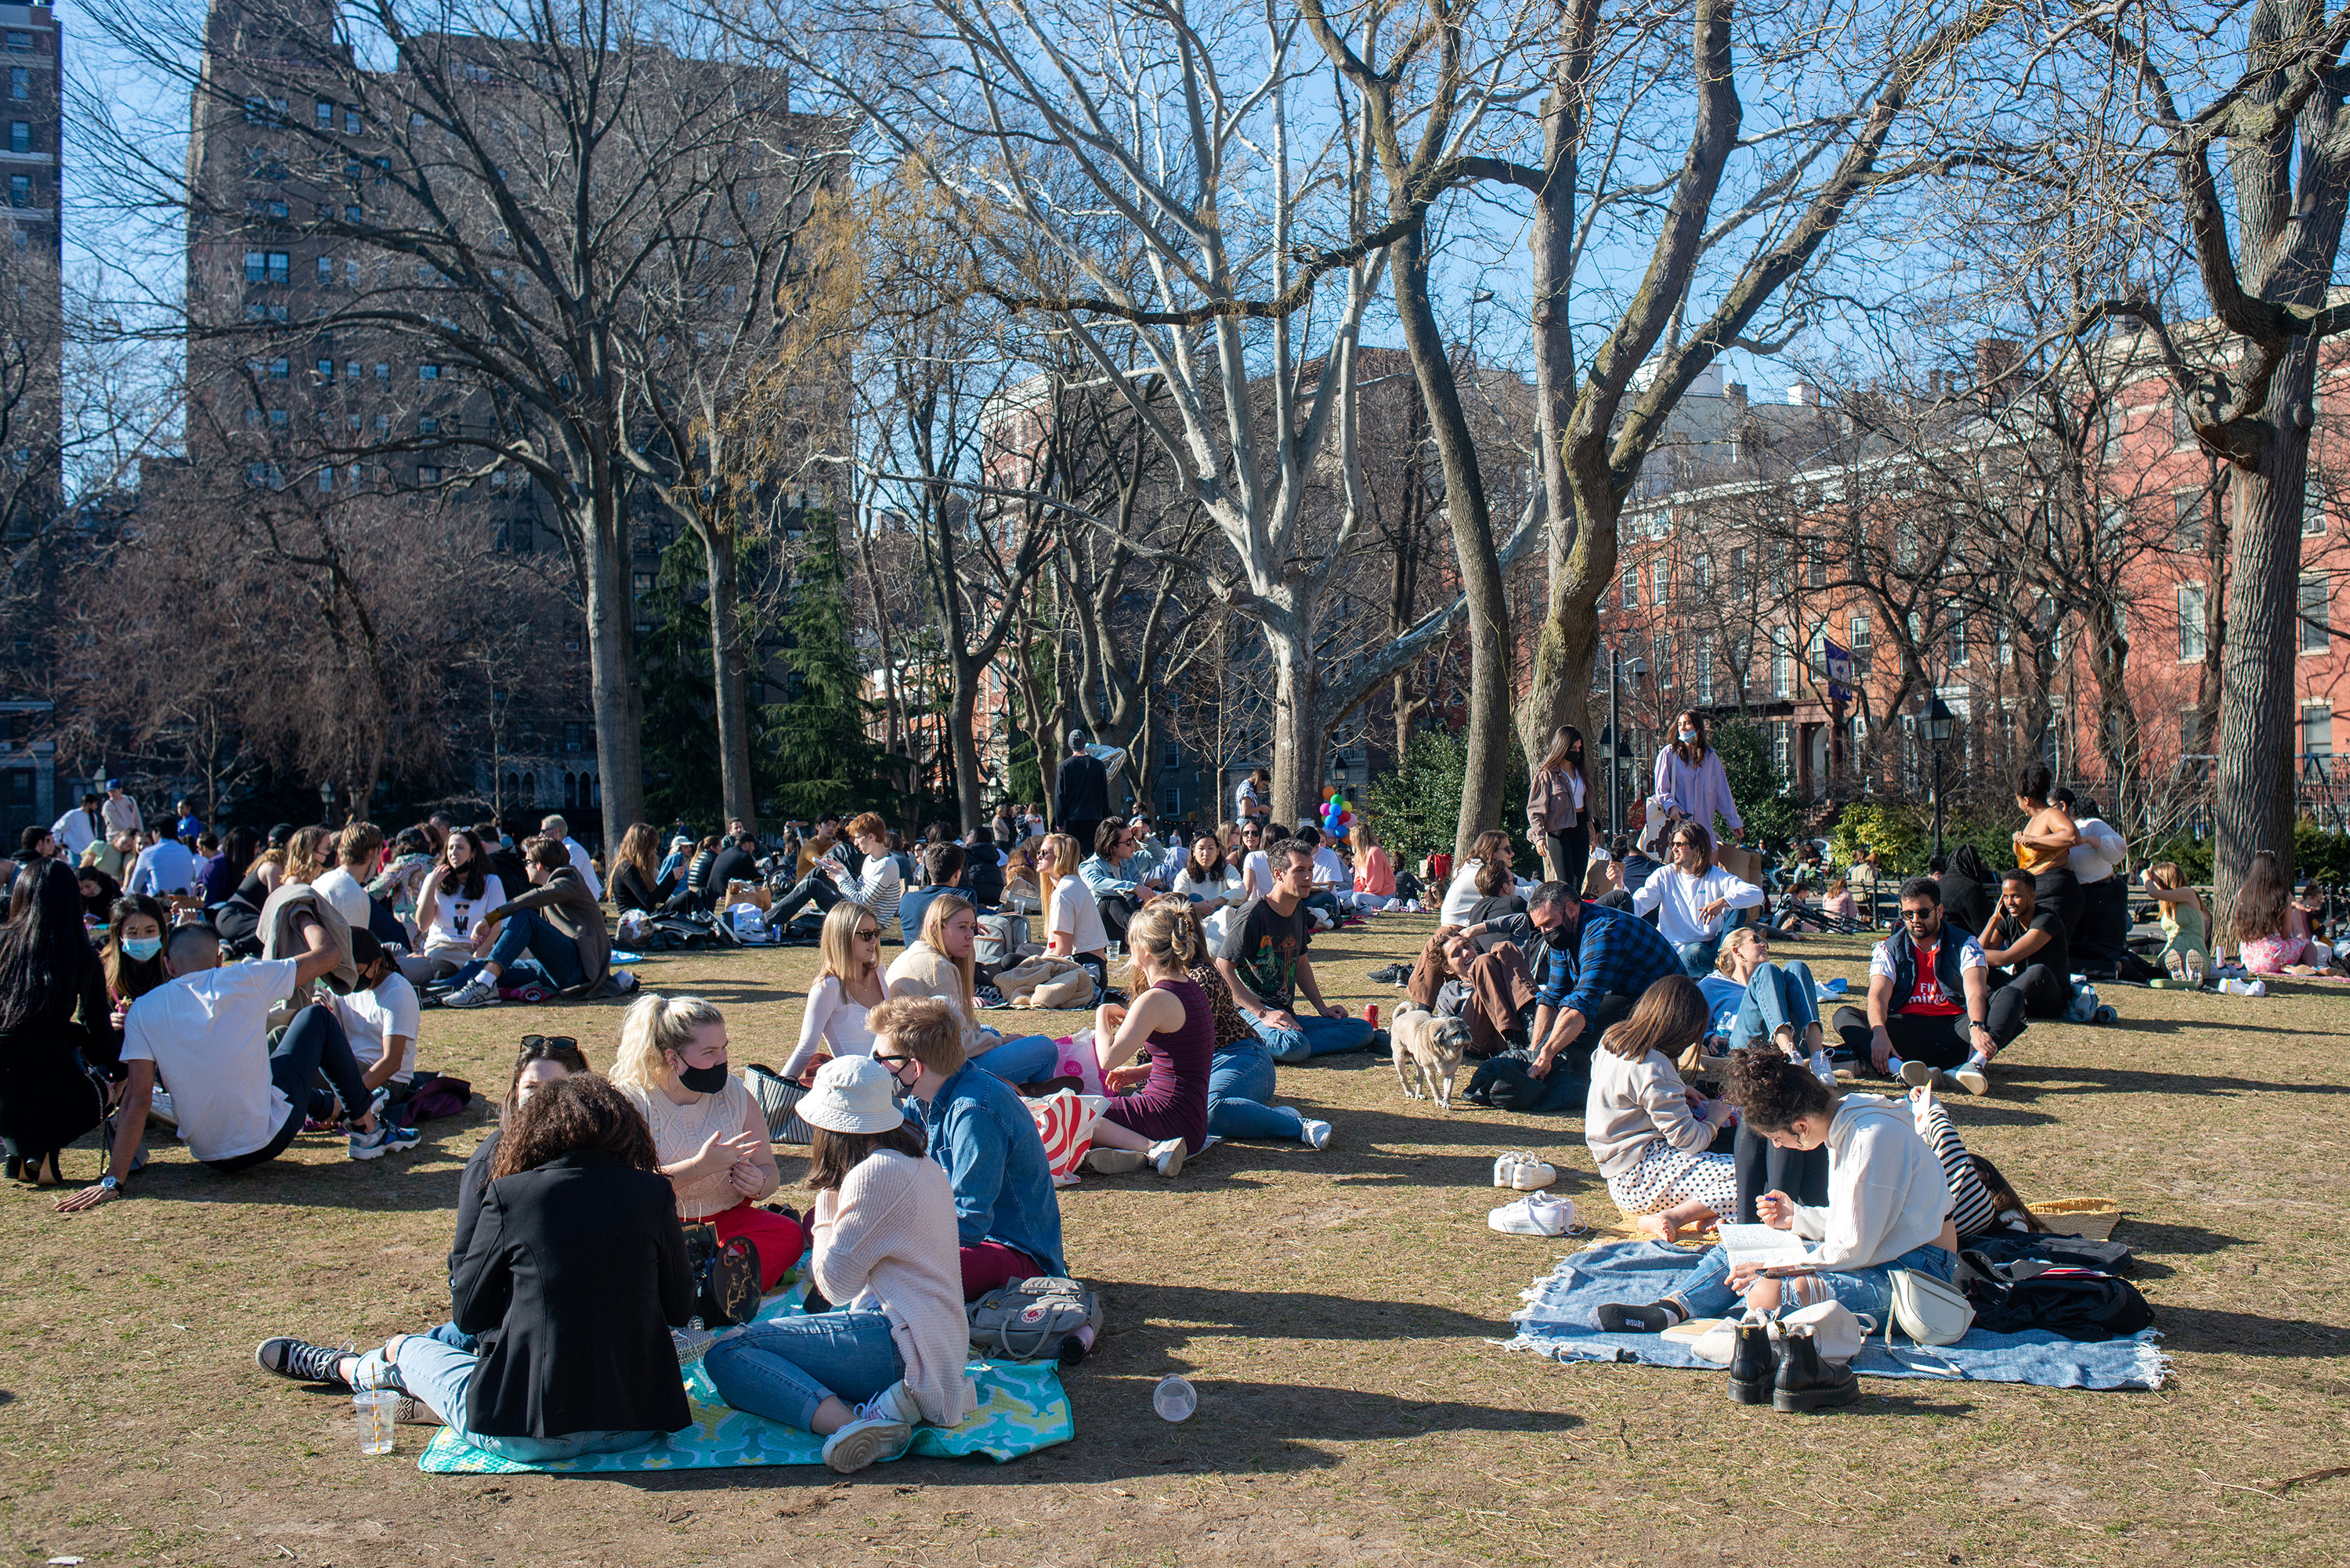 People gather in Washington Square Park on Sunday, March 21, in New York City.